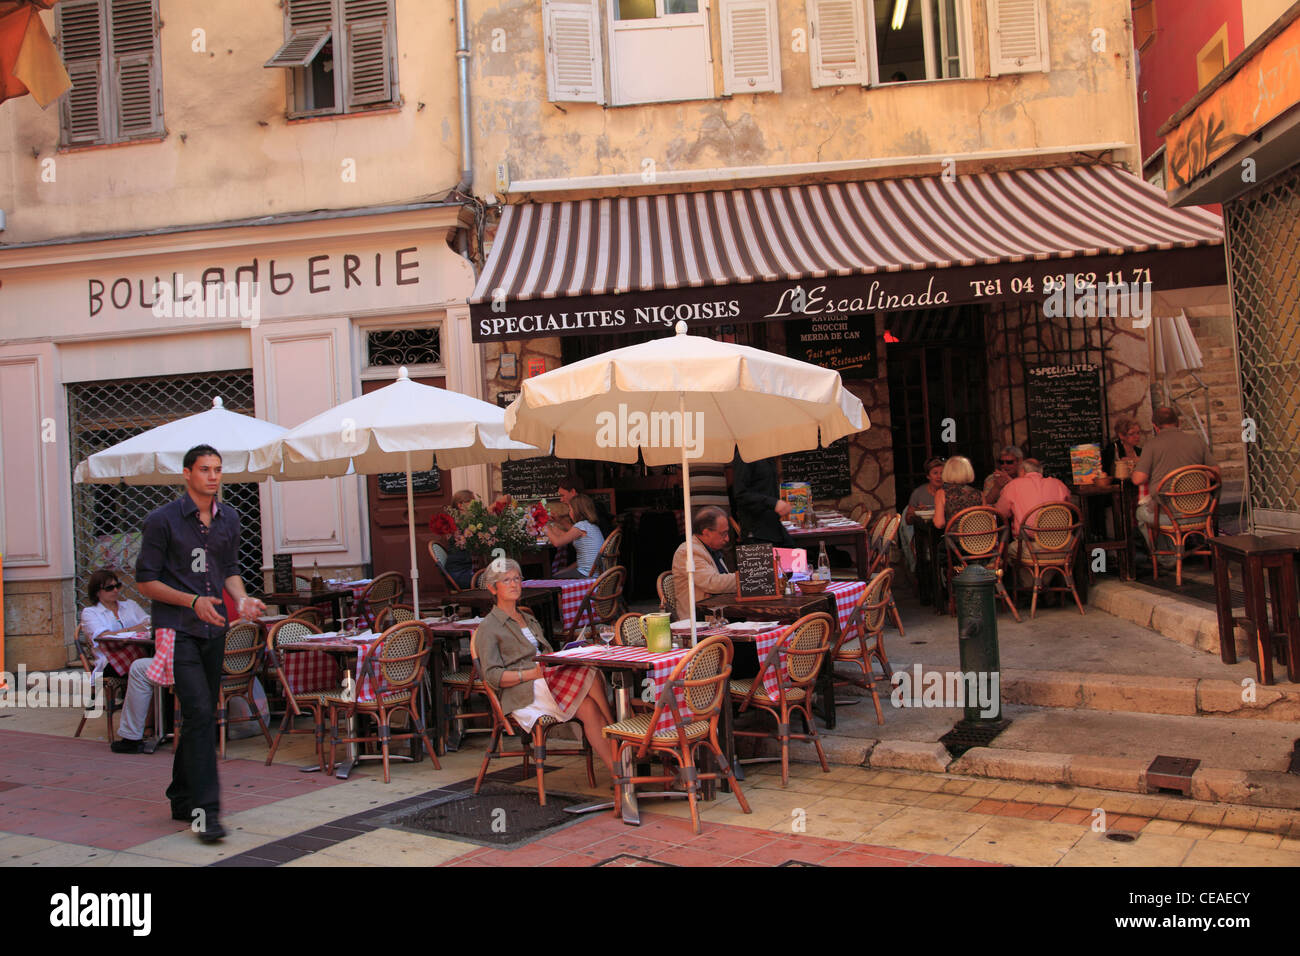 Cafe, Old Town, Vieux Nice, Nice, French Riviera, Alpes Maritimes, Provence, Cote d Azur, France, Europe - Stock Image